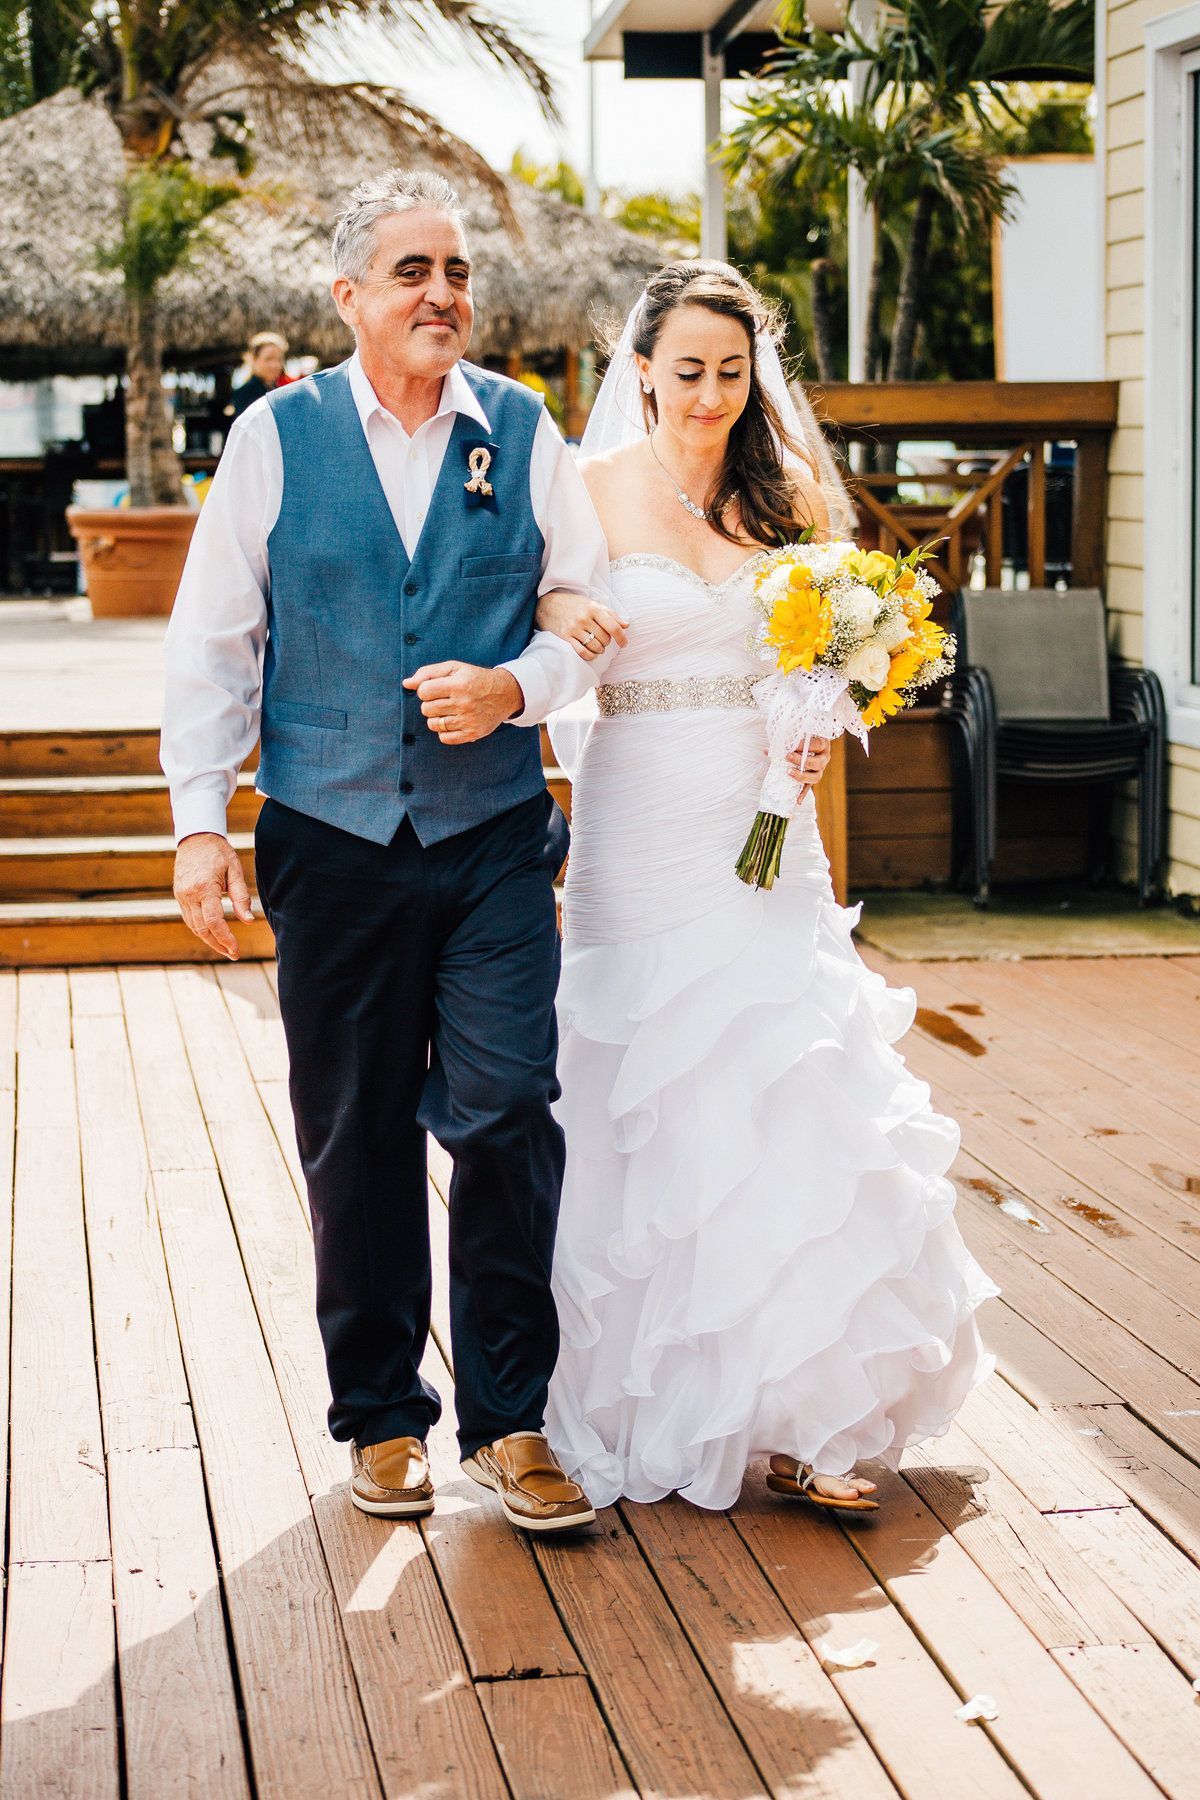 Kimberly_Hoyle_Photography_Marrero_Millikens_Reef_Wedding-42